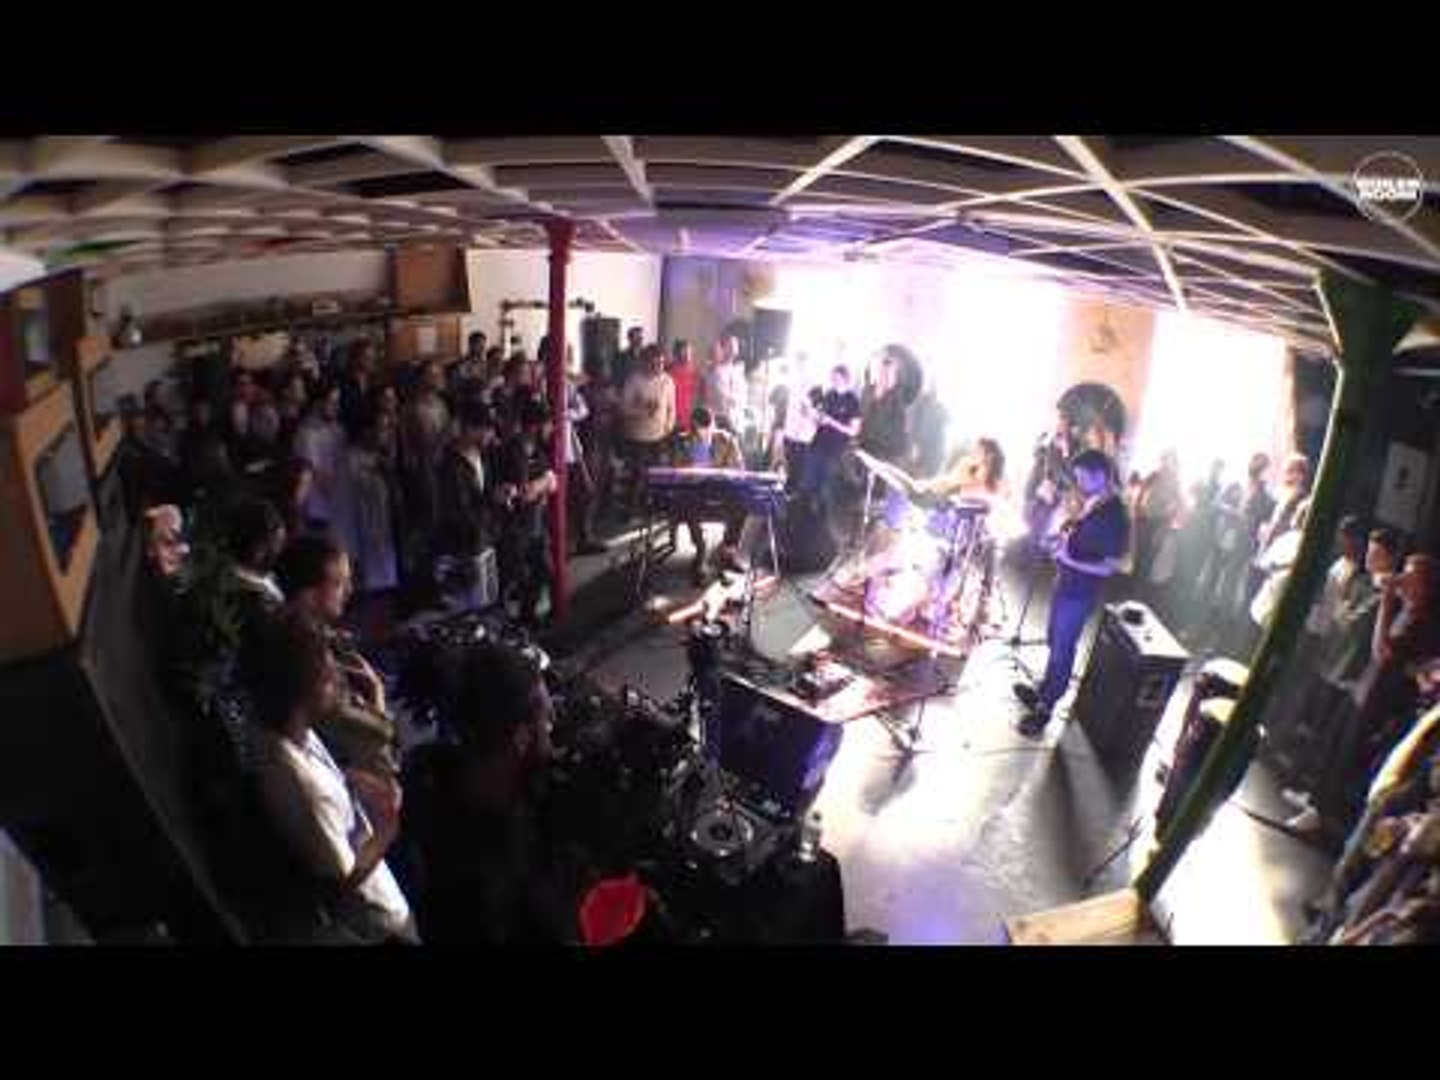 Henry Wu presents The Yussef Kamaal Trio Boiler Room London Live Set